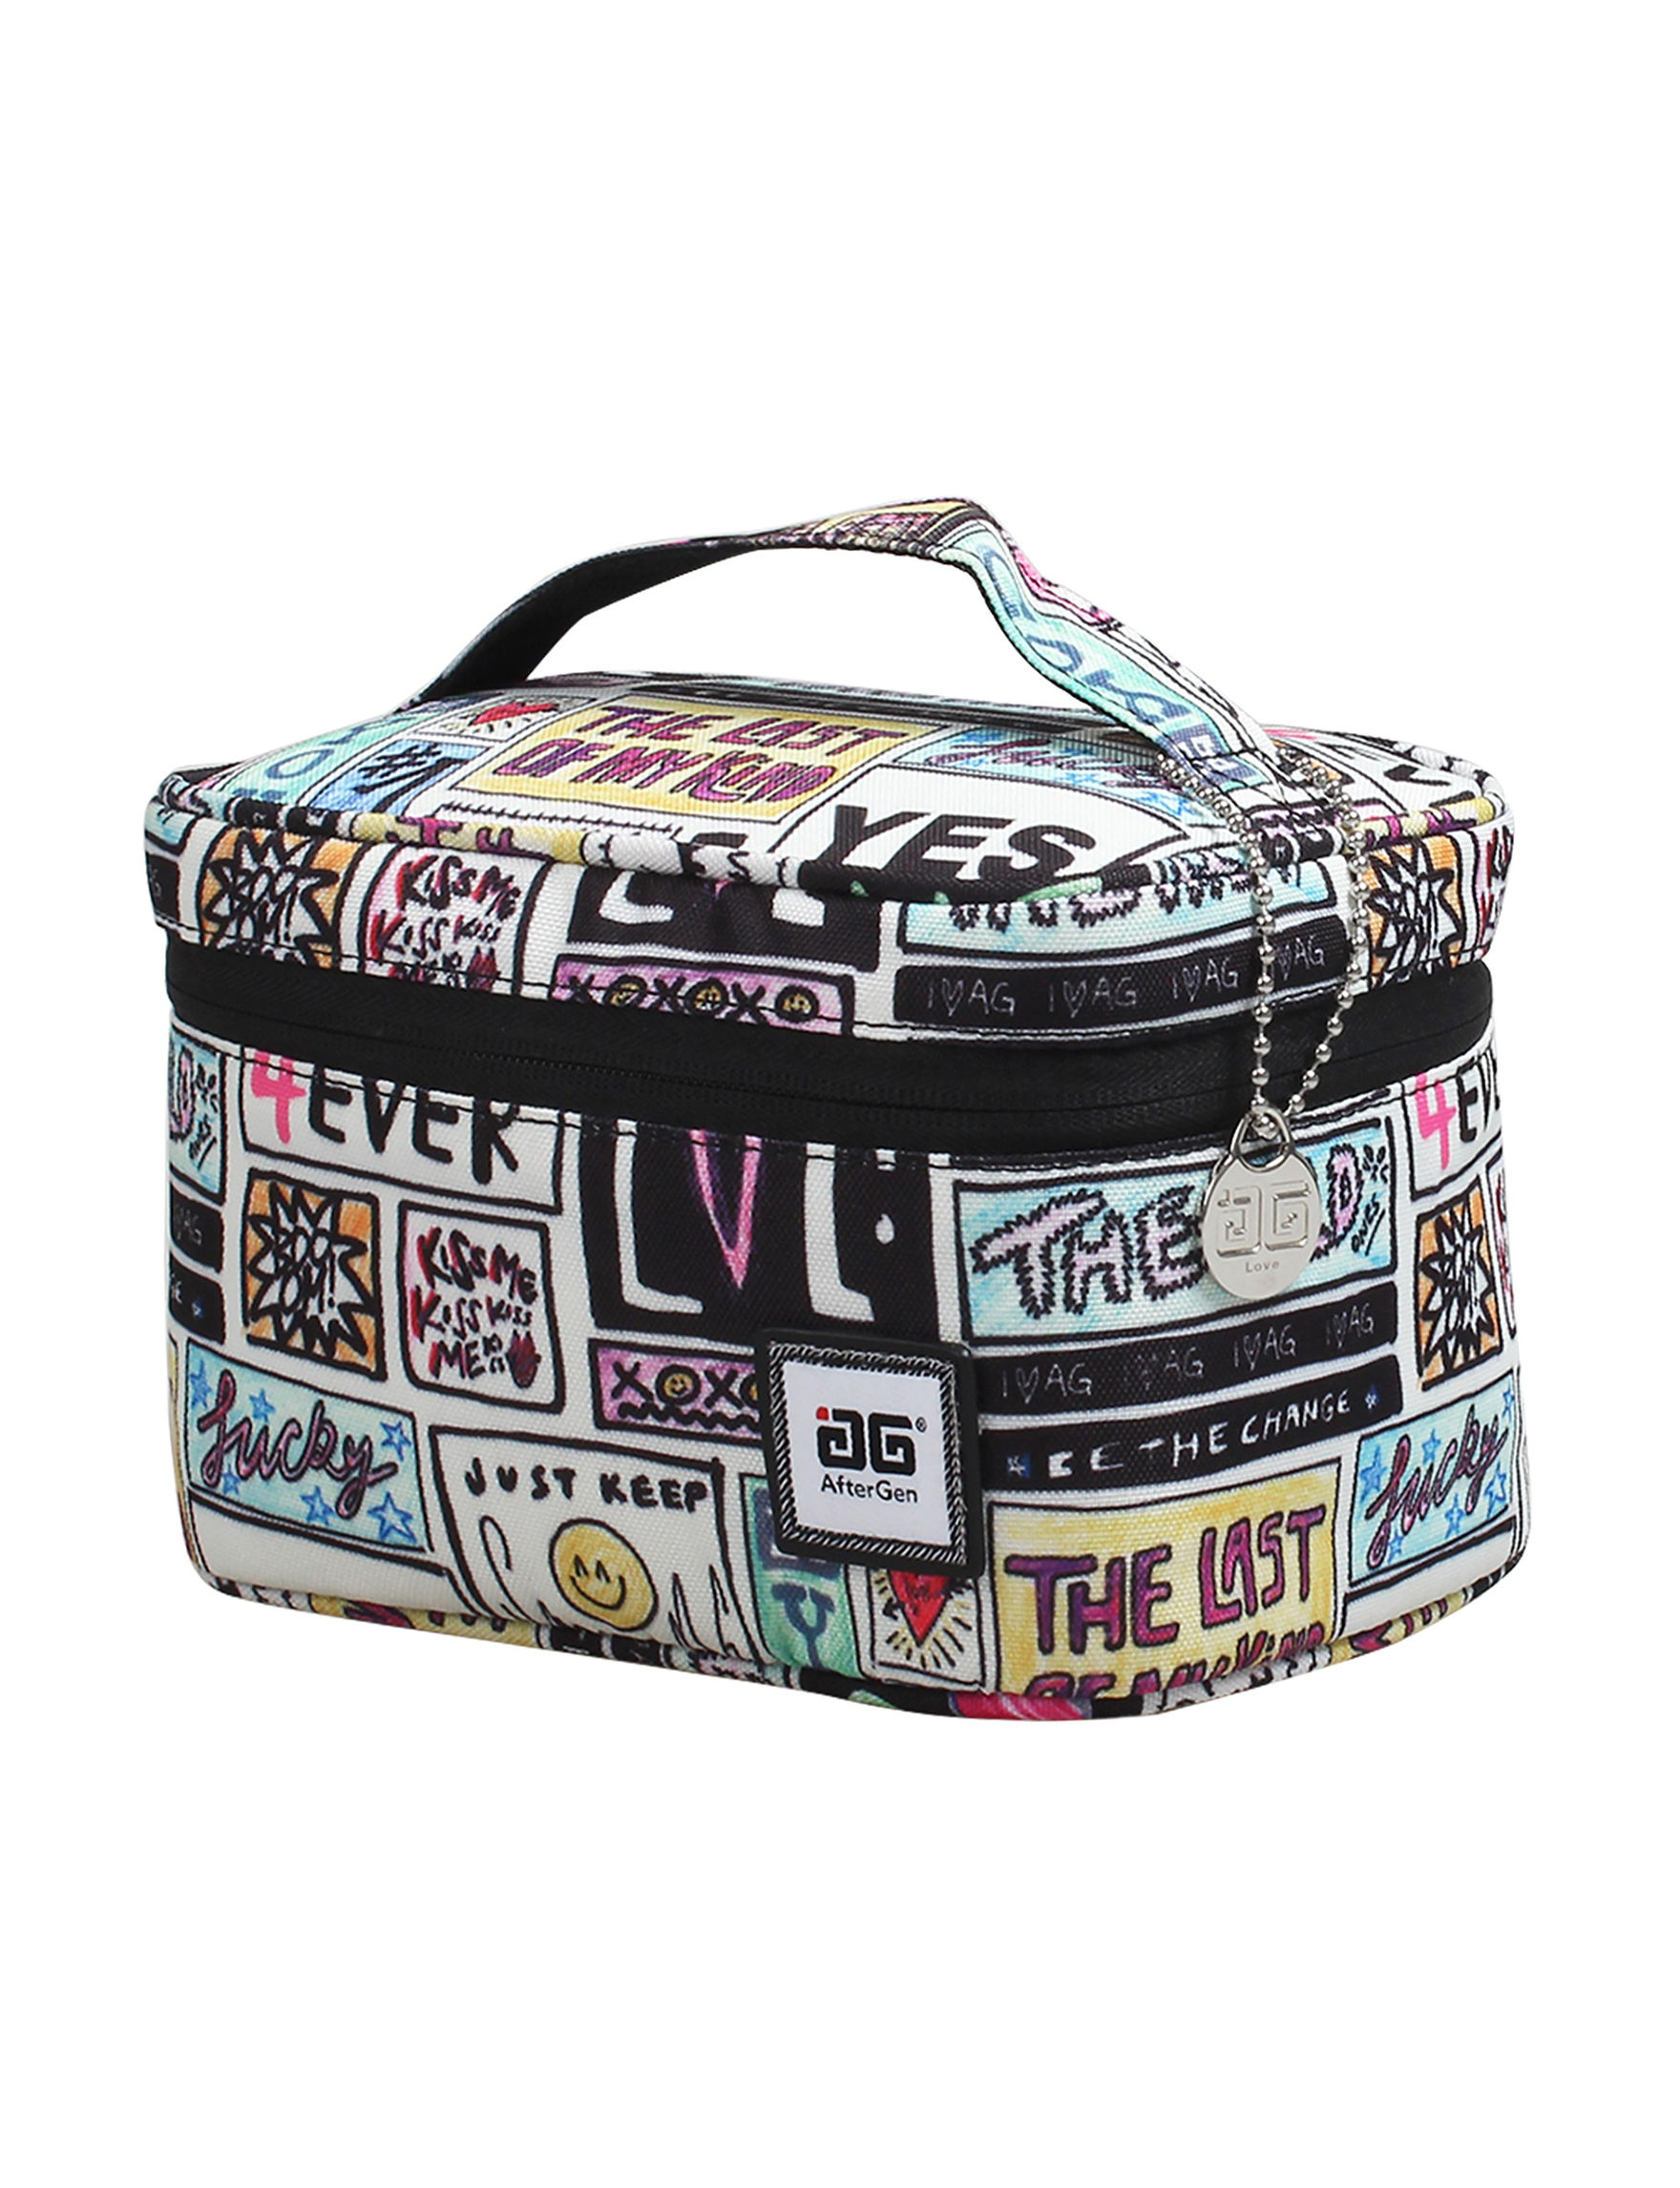 Aftergen White / Black Lunch Boxes & Bags Travel Accessories